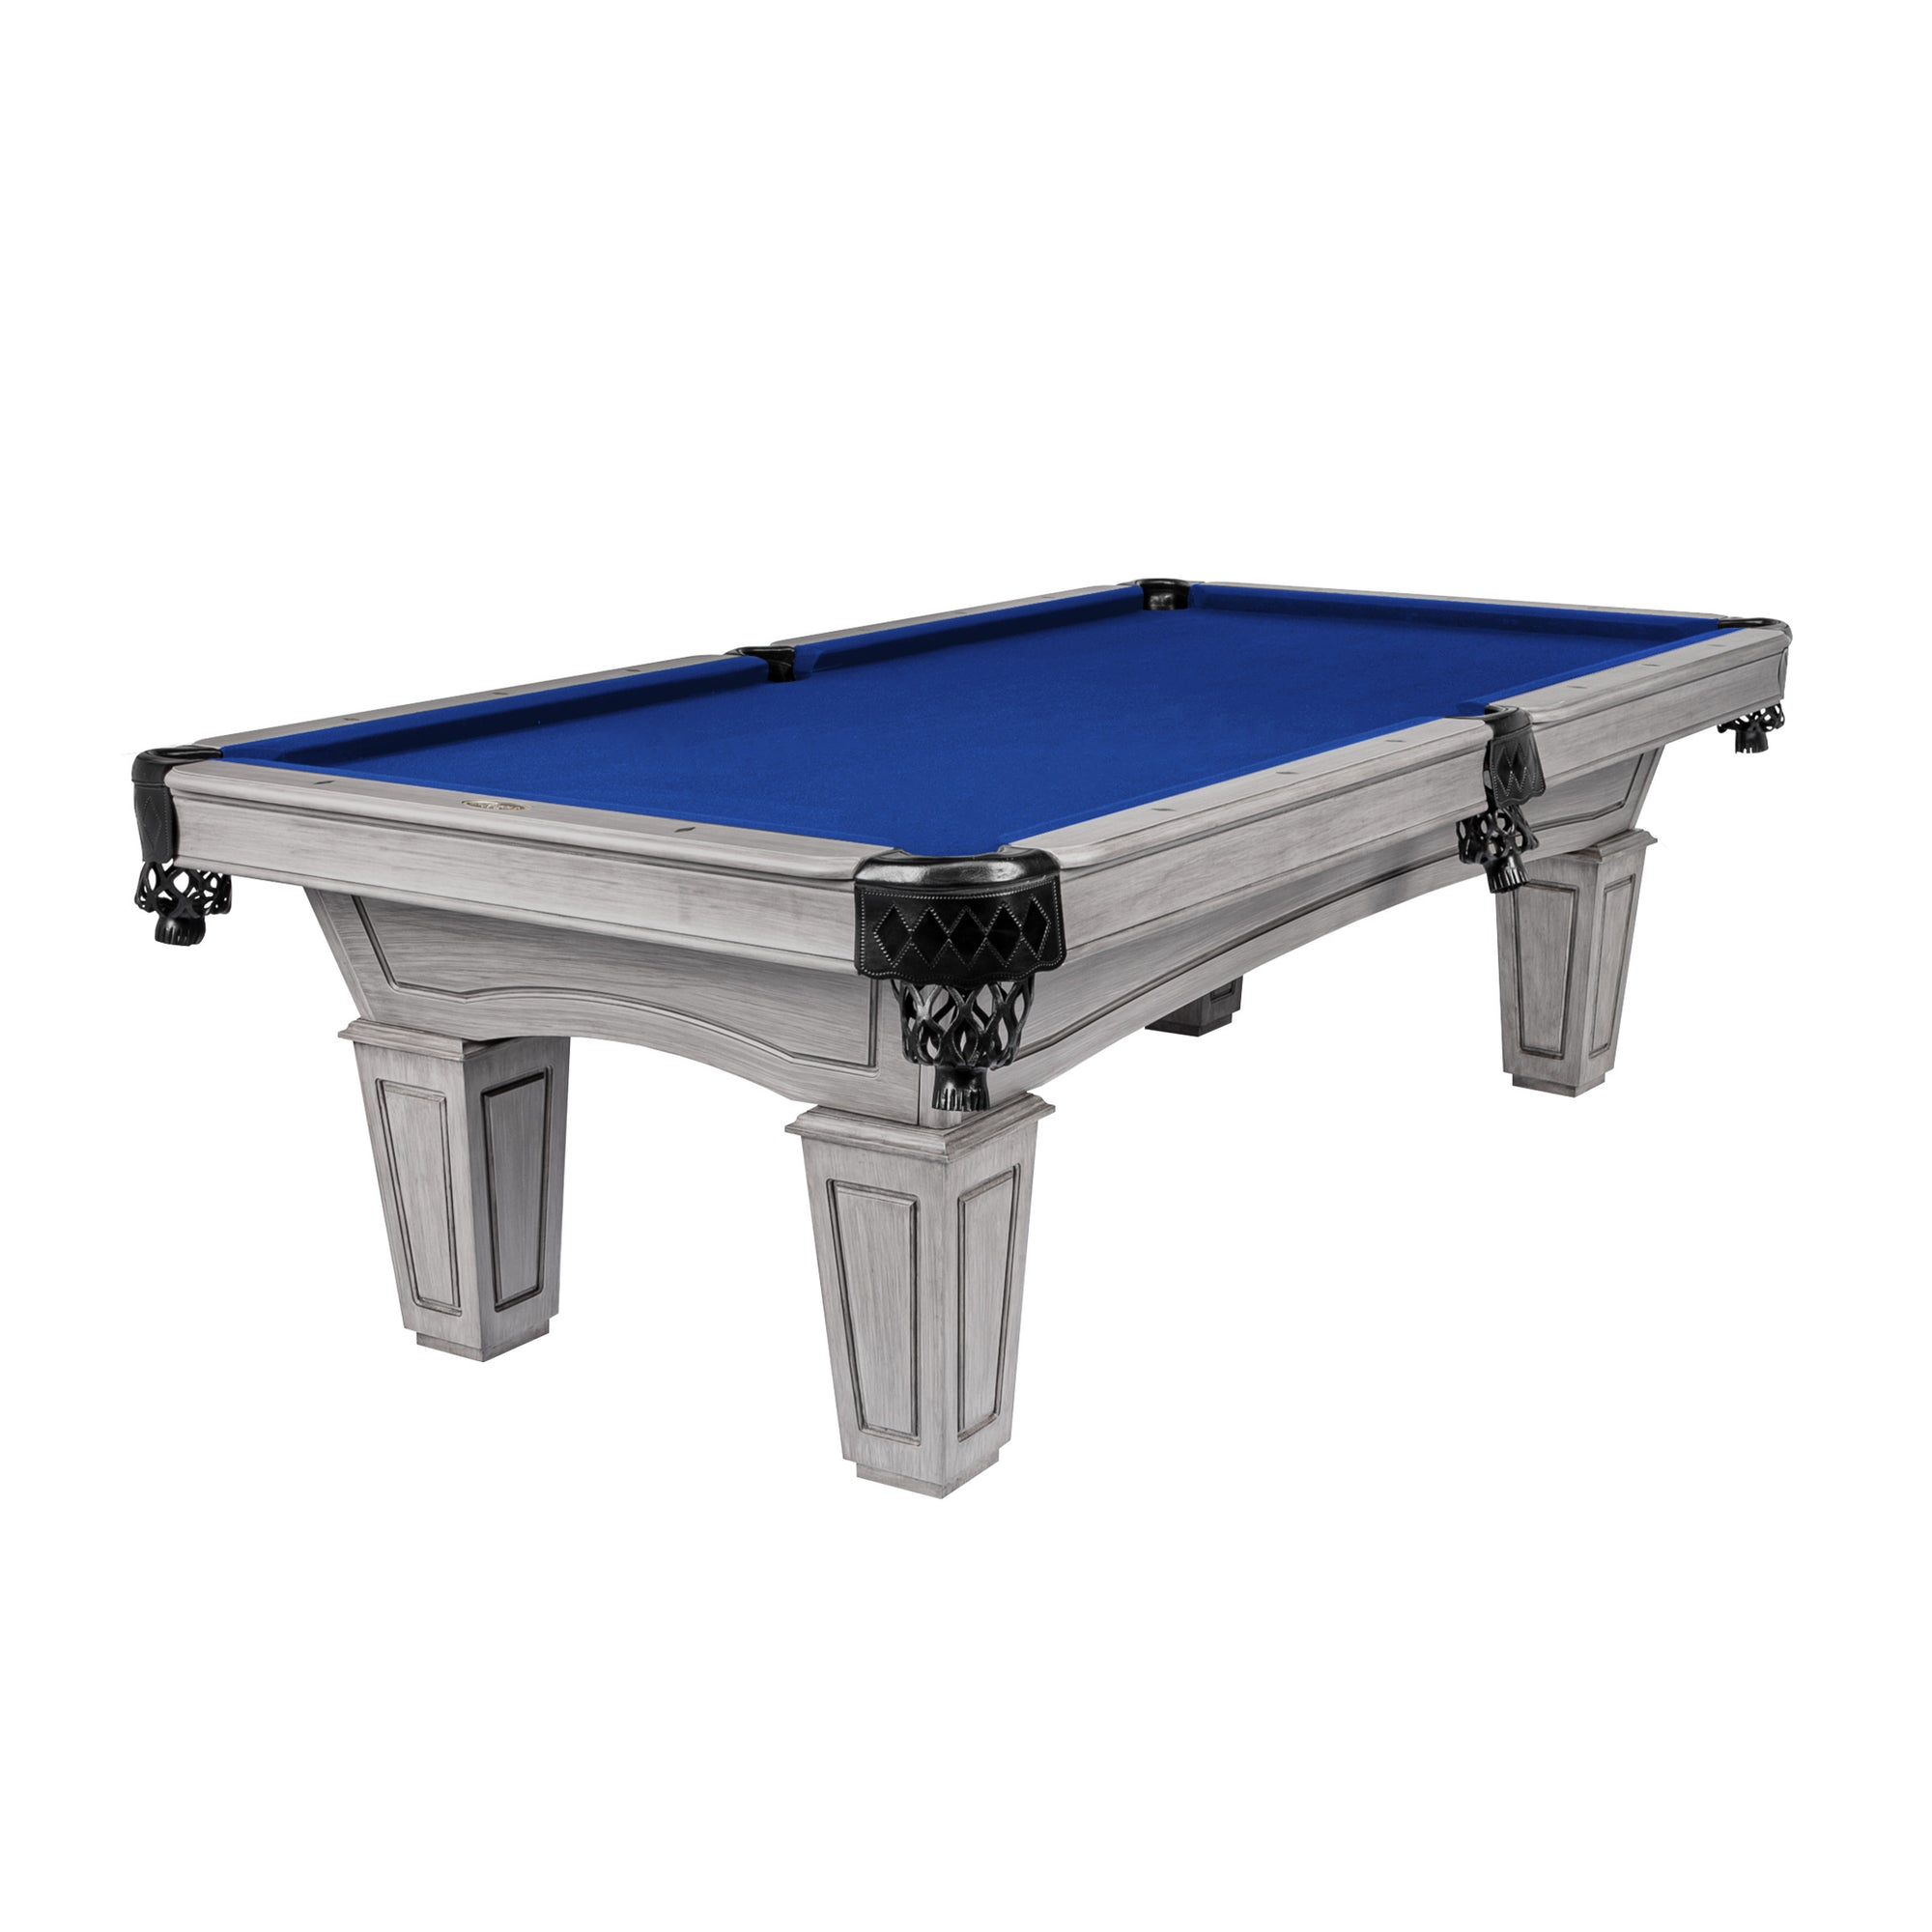 The Resolute Pool Table, Silver Mist with Tapered Box Legs